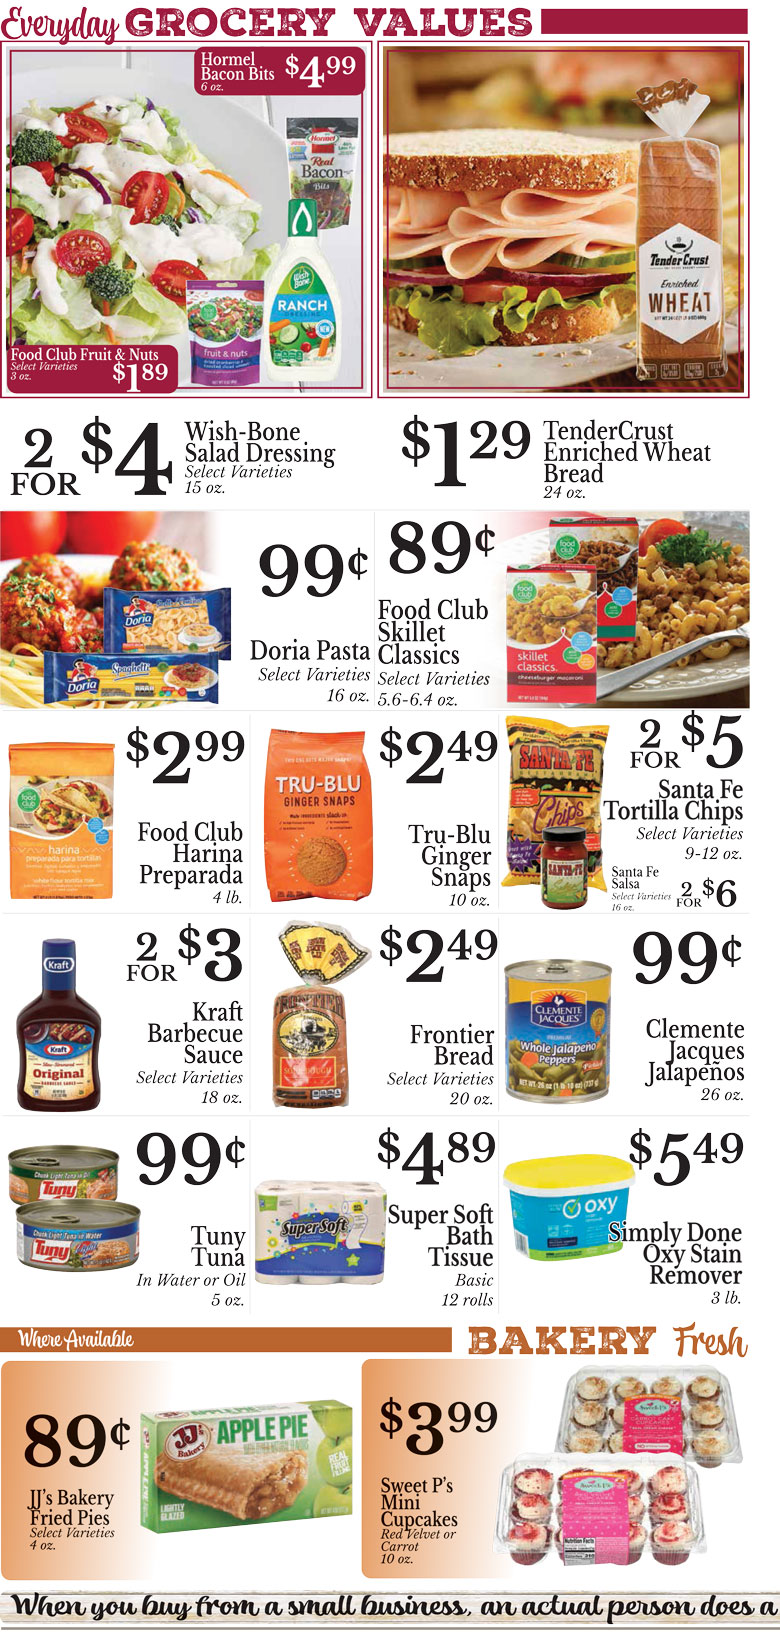 Weekly Ad Page 2